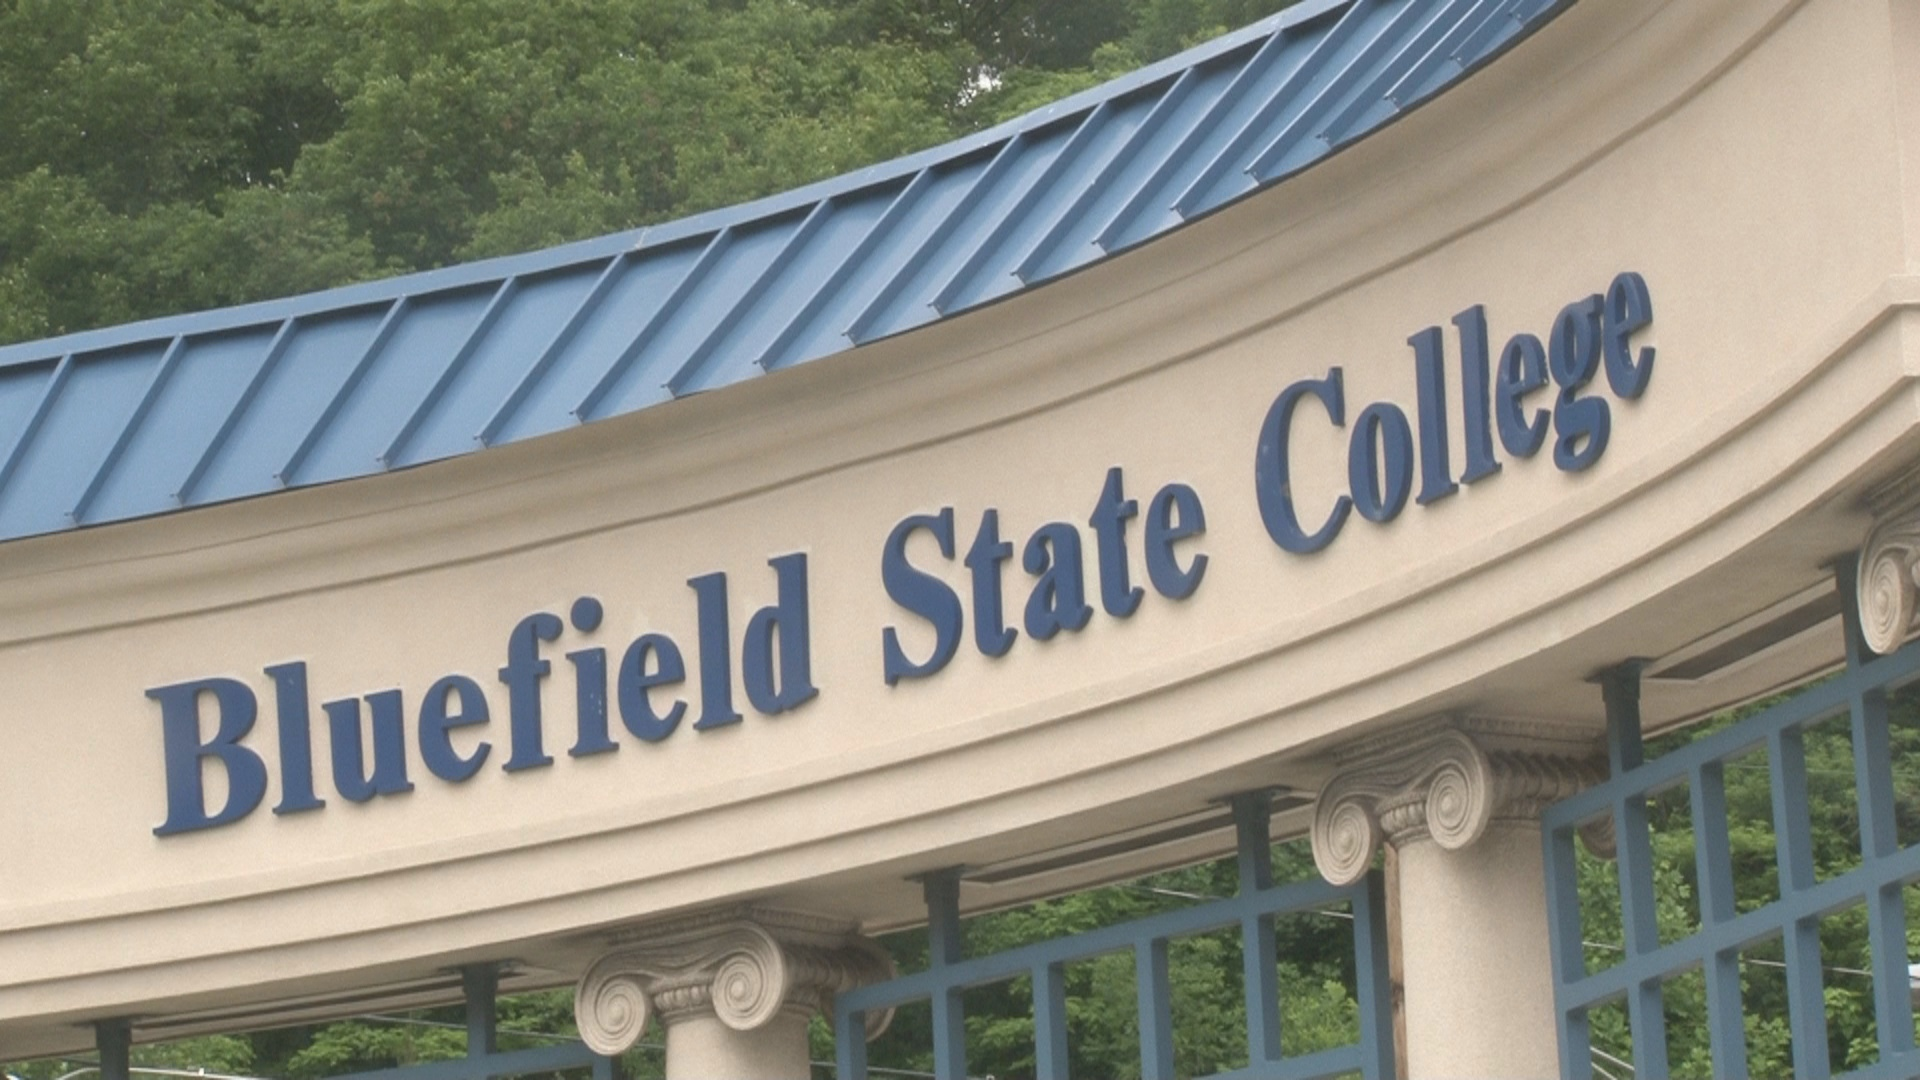 Bluefield State College.jpg